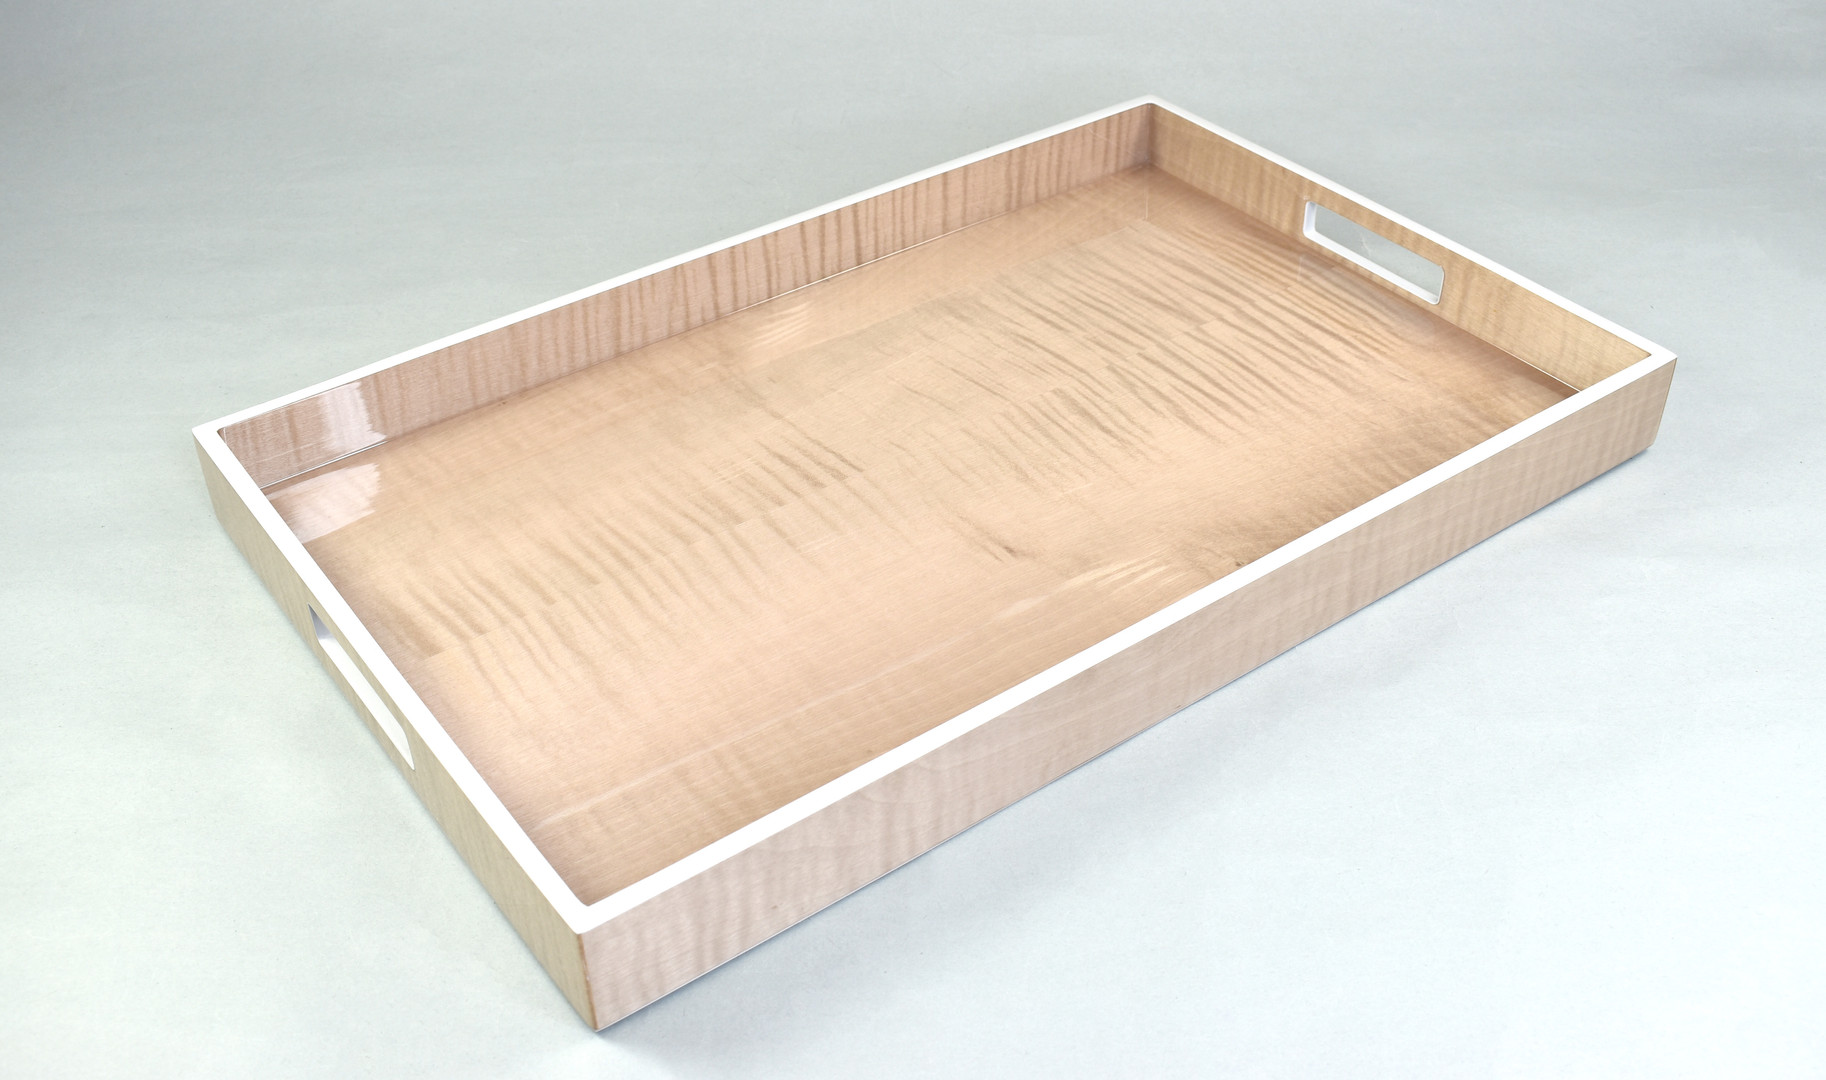 Sycamore with Silver Dollar- Breakfast Tray